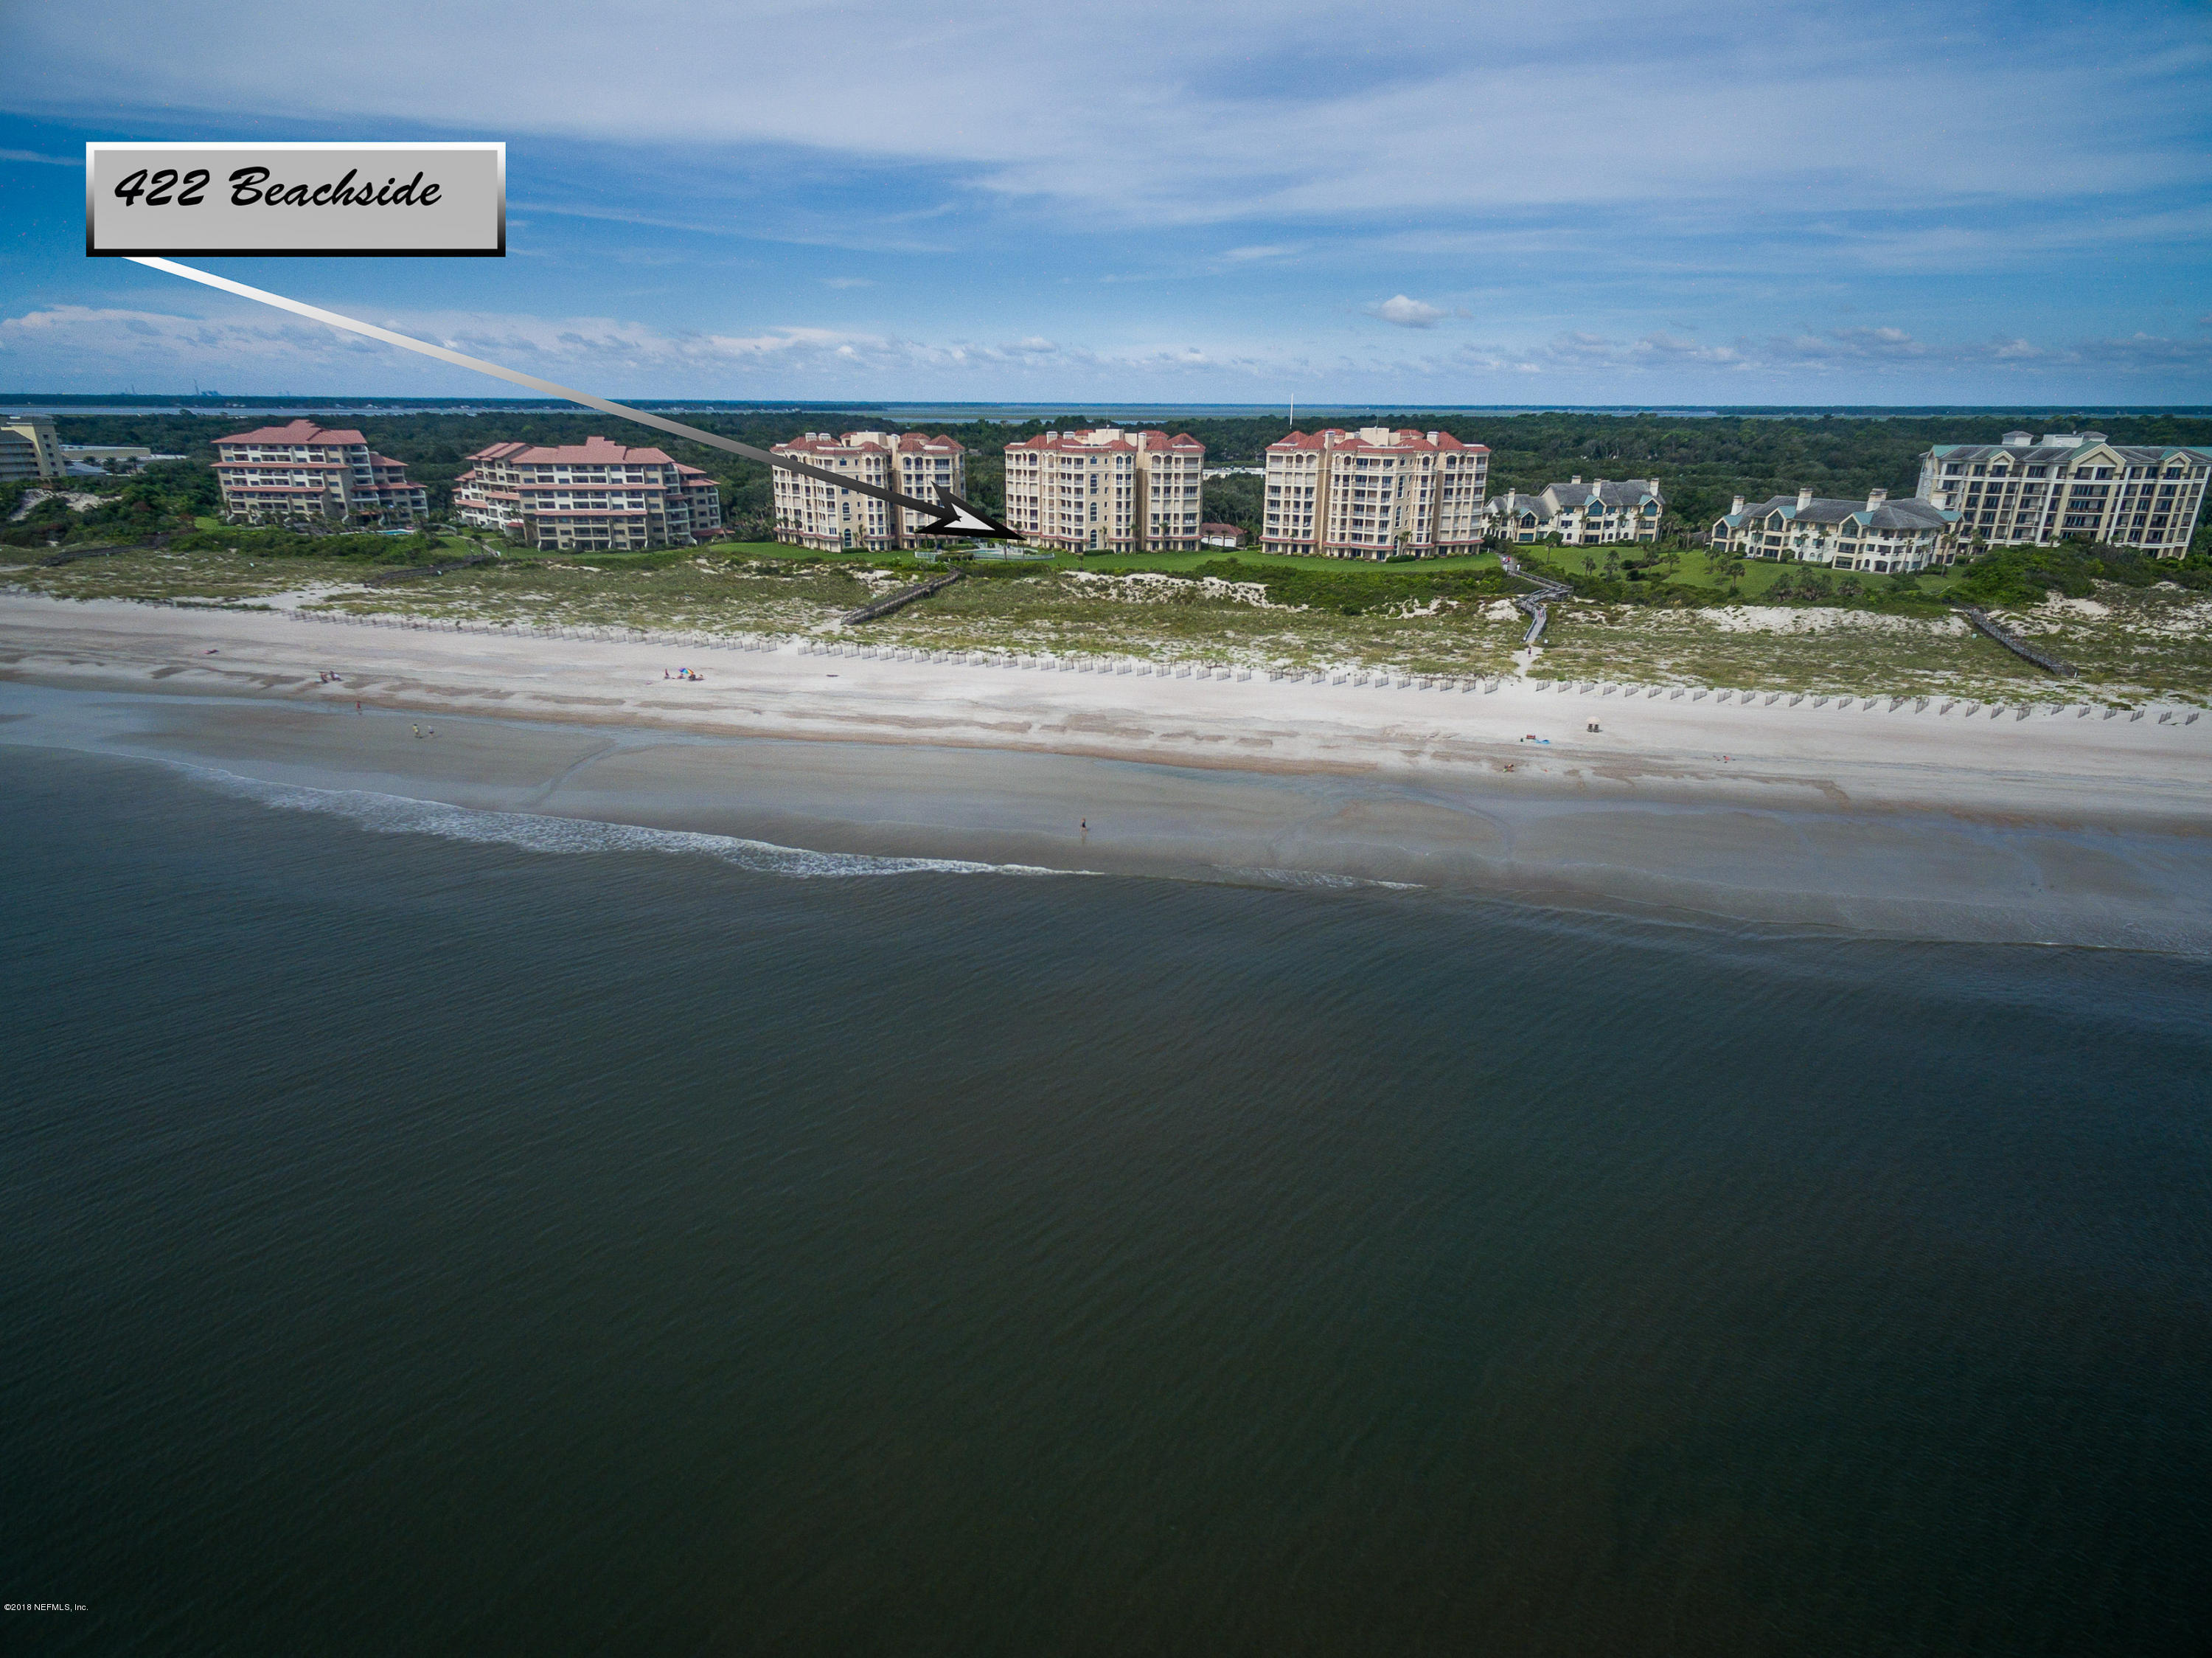 422 BEACHSIDE, AMELIA ISLAND, FLORIDA 32034, 3 Bedrooms Bedrooms, ,3 BathroomsBathrooms,Residential - condos/townhomes,For sale,BEACHSIDE,959863